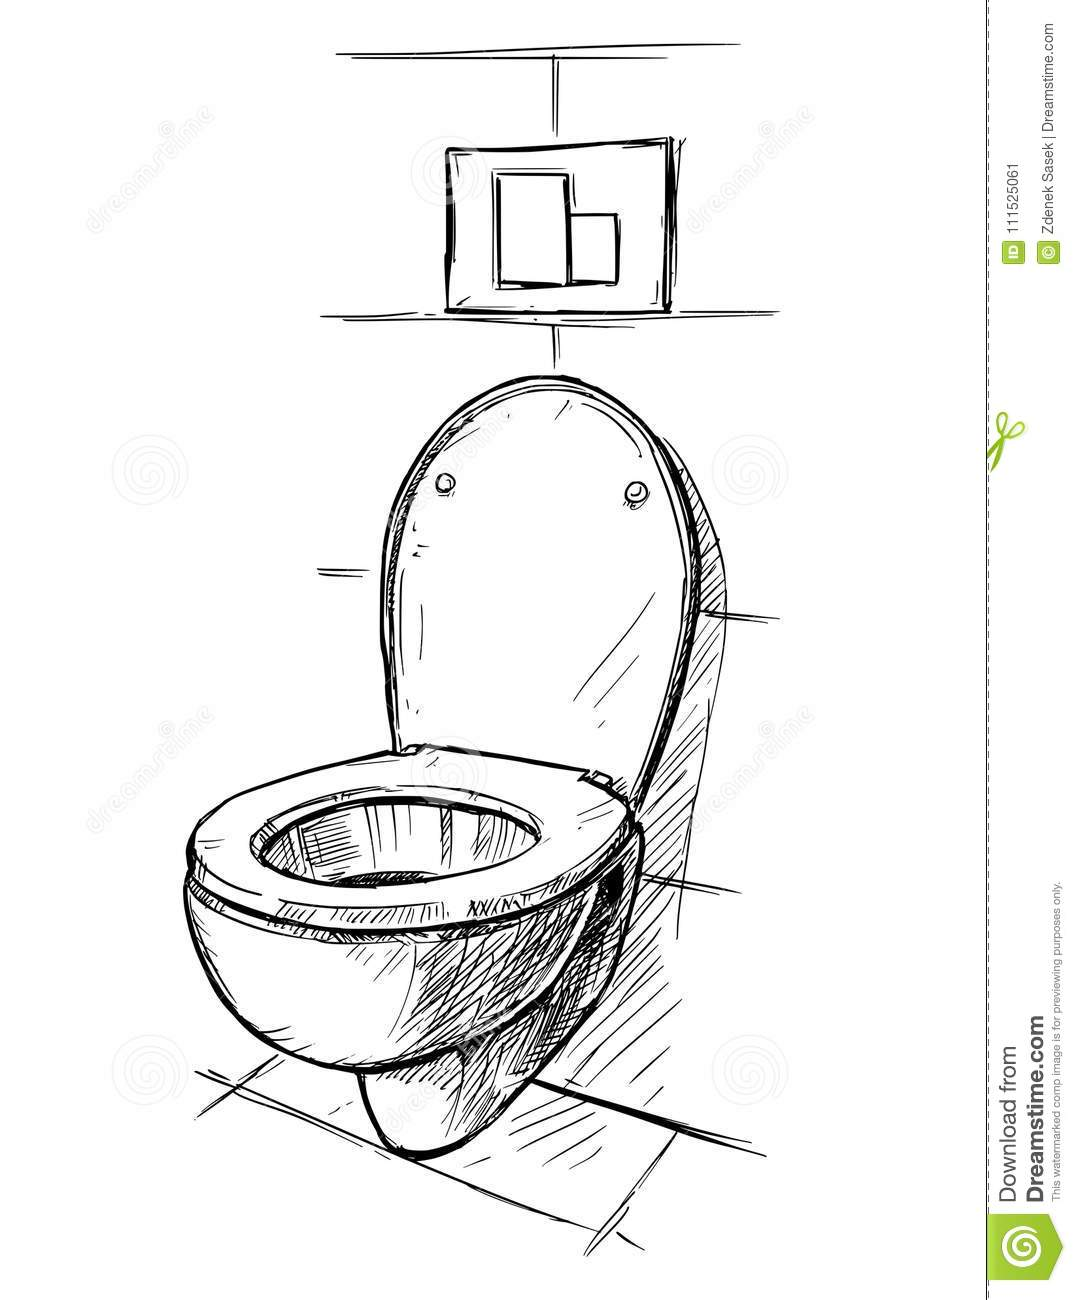 Vector Hand Drawing Of Toilet Bowl In Bathroom Stock Illustration